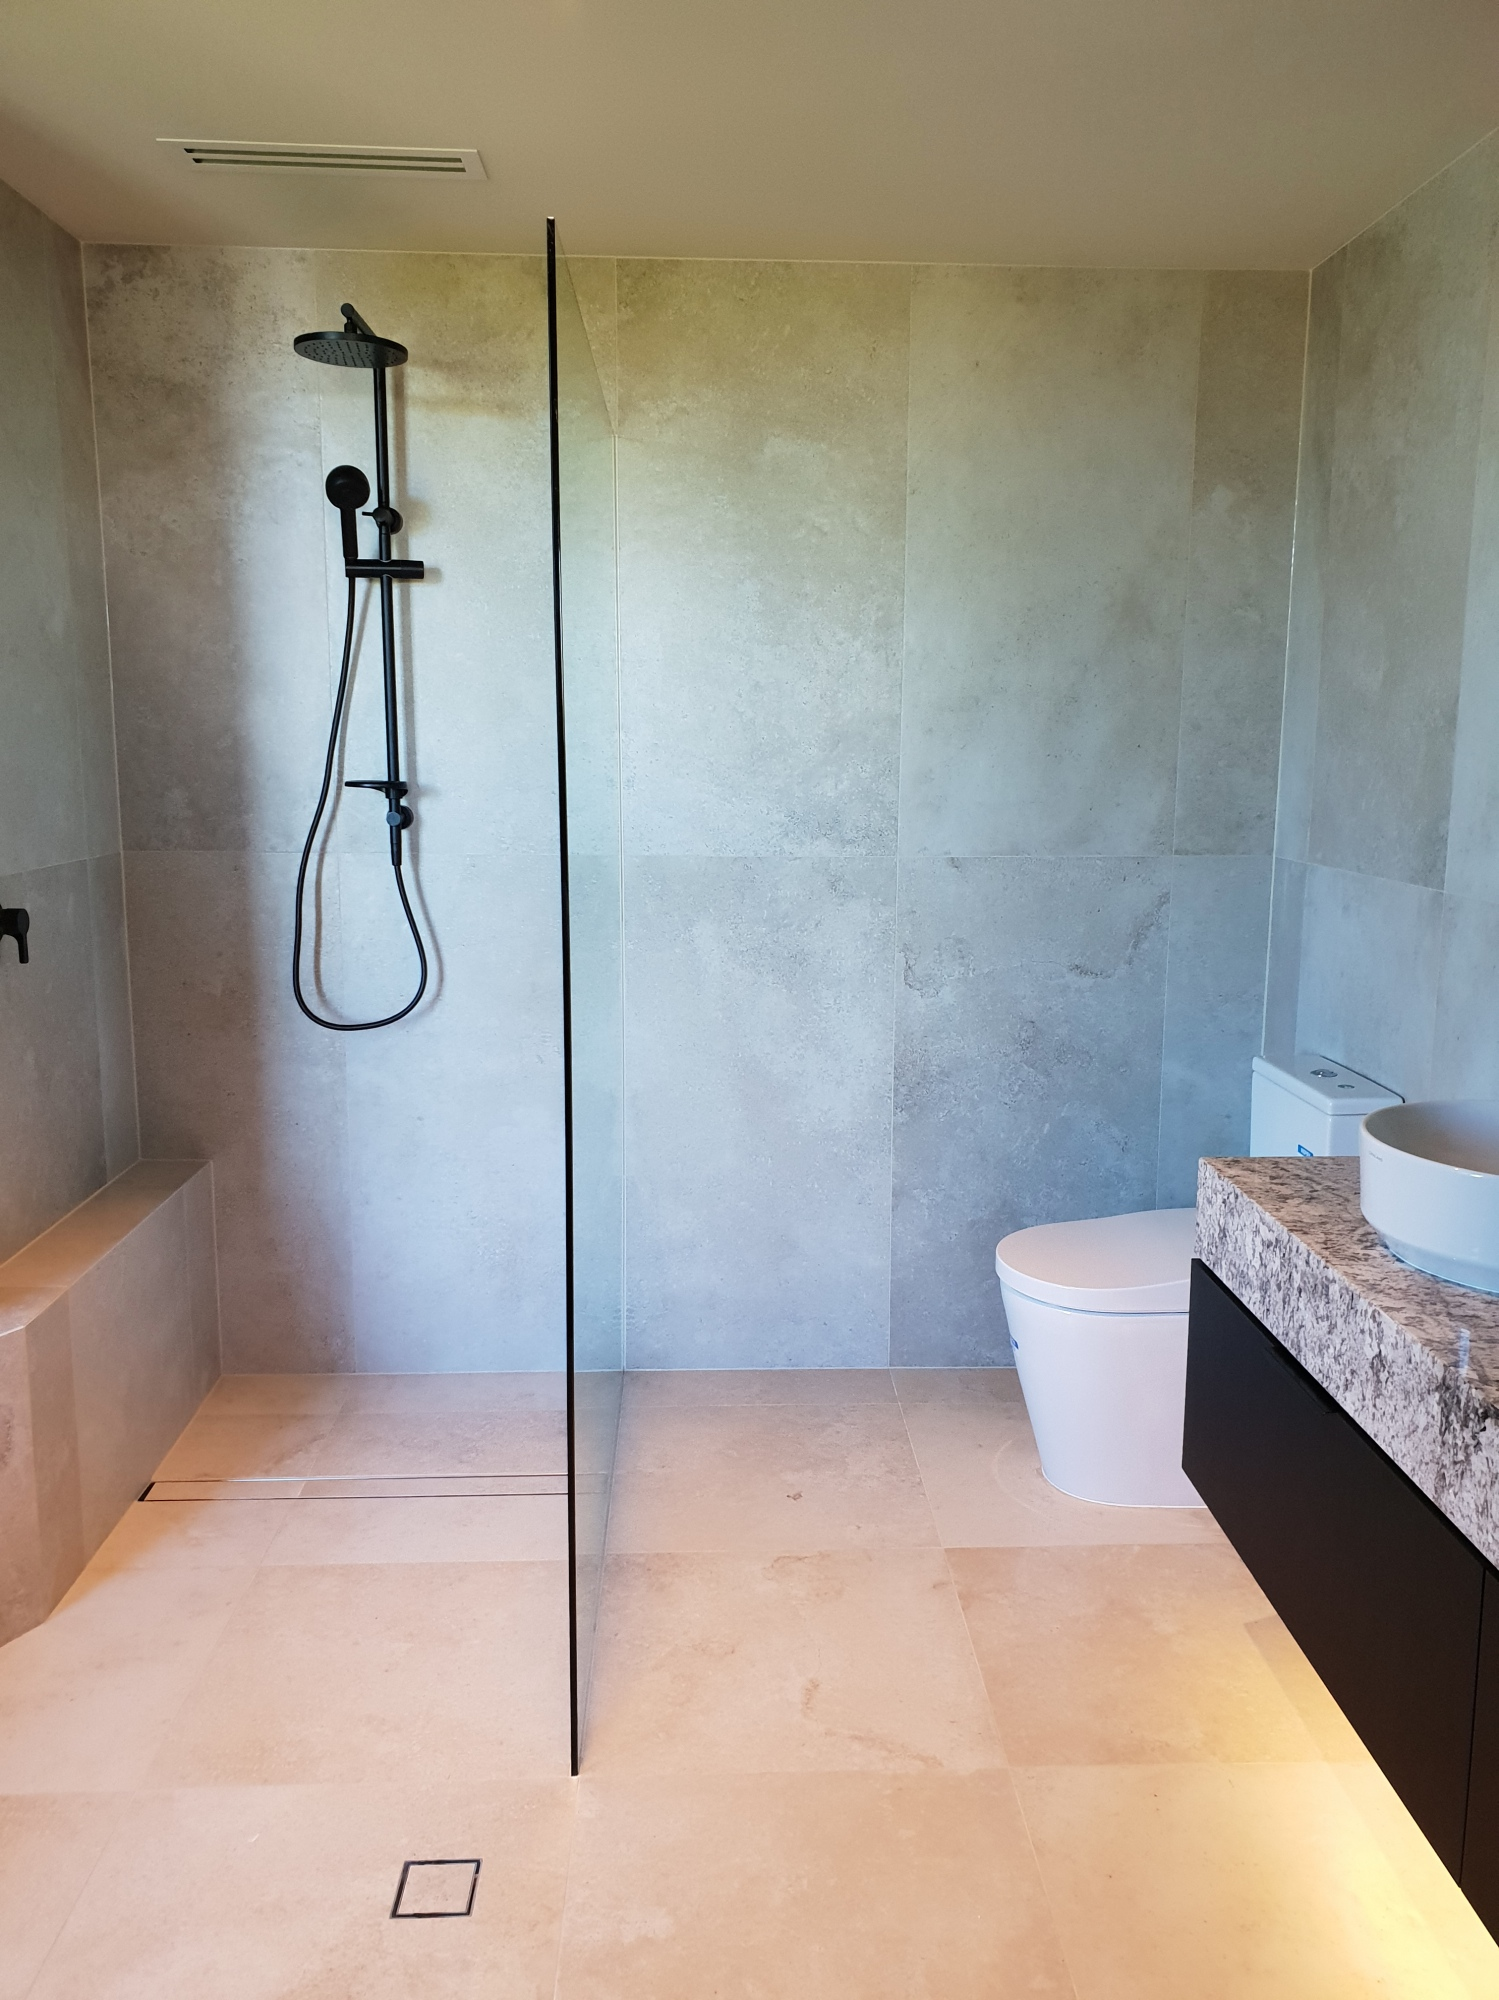 Ensuite with glass shower screen